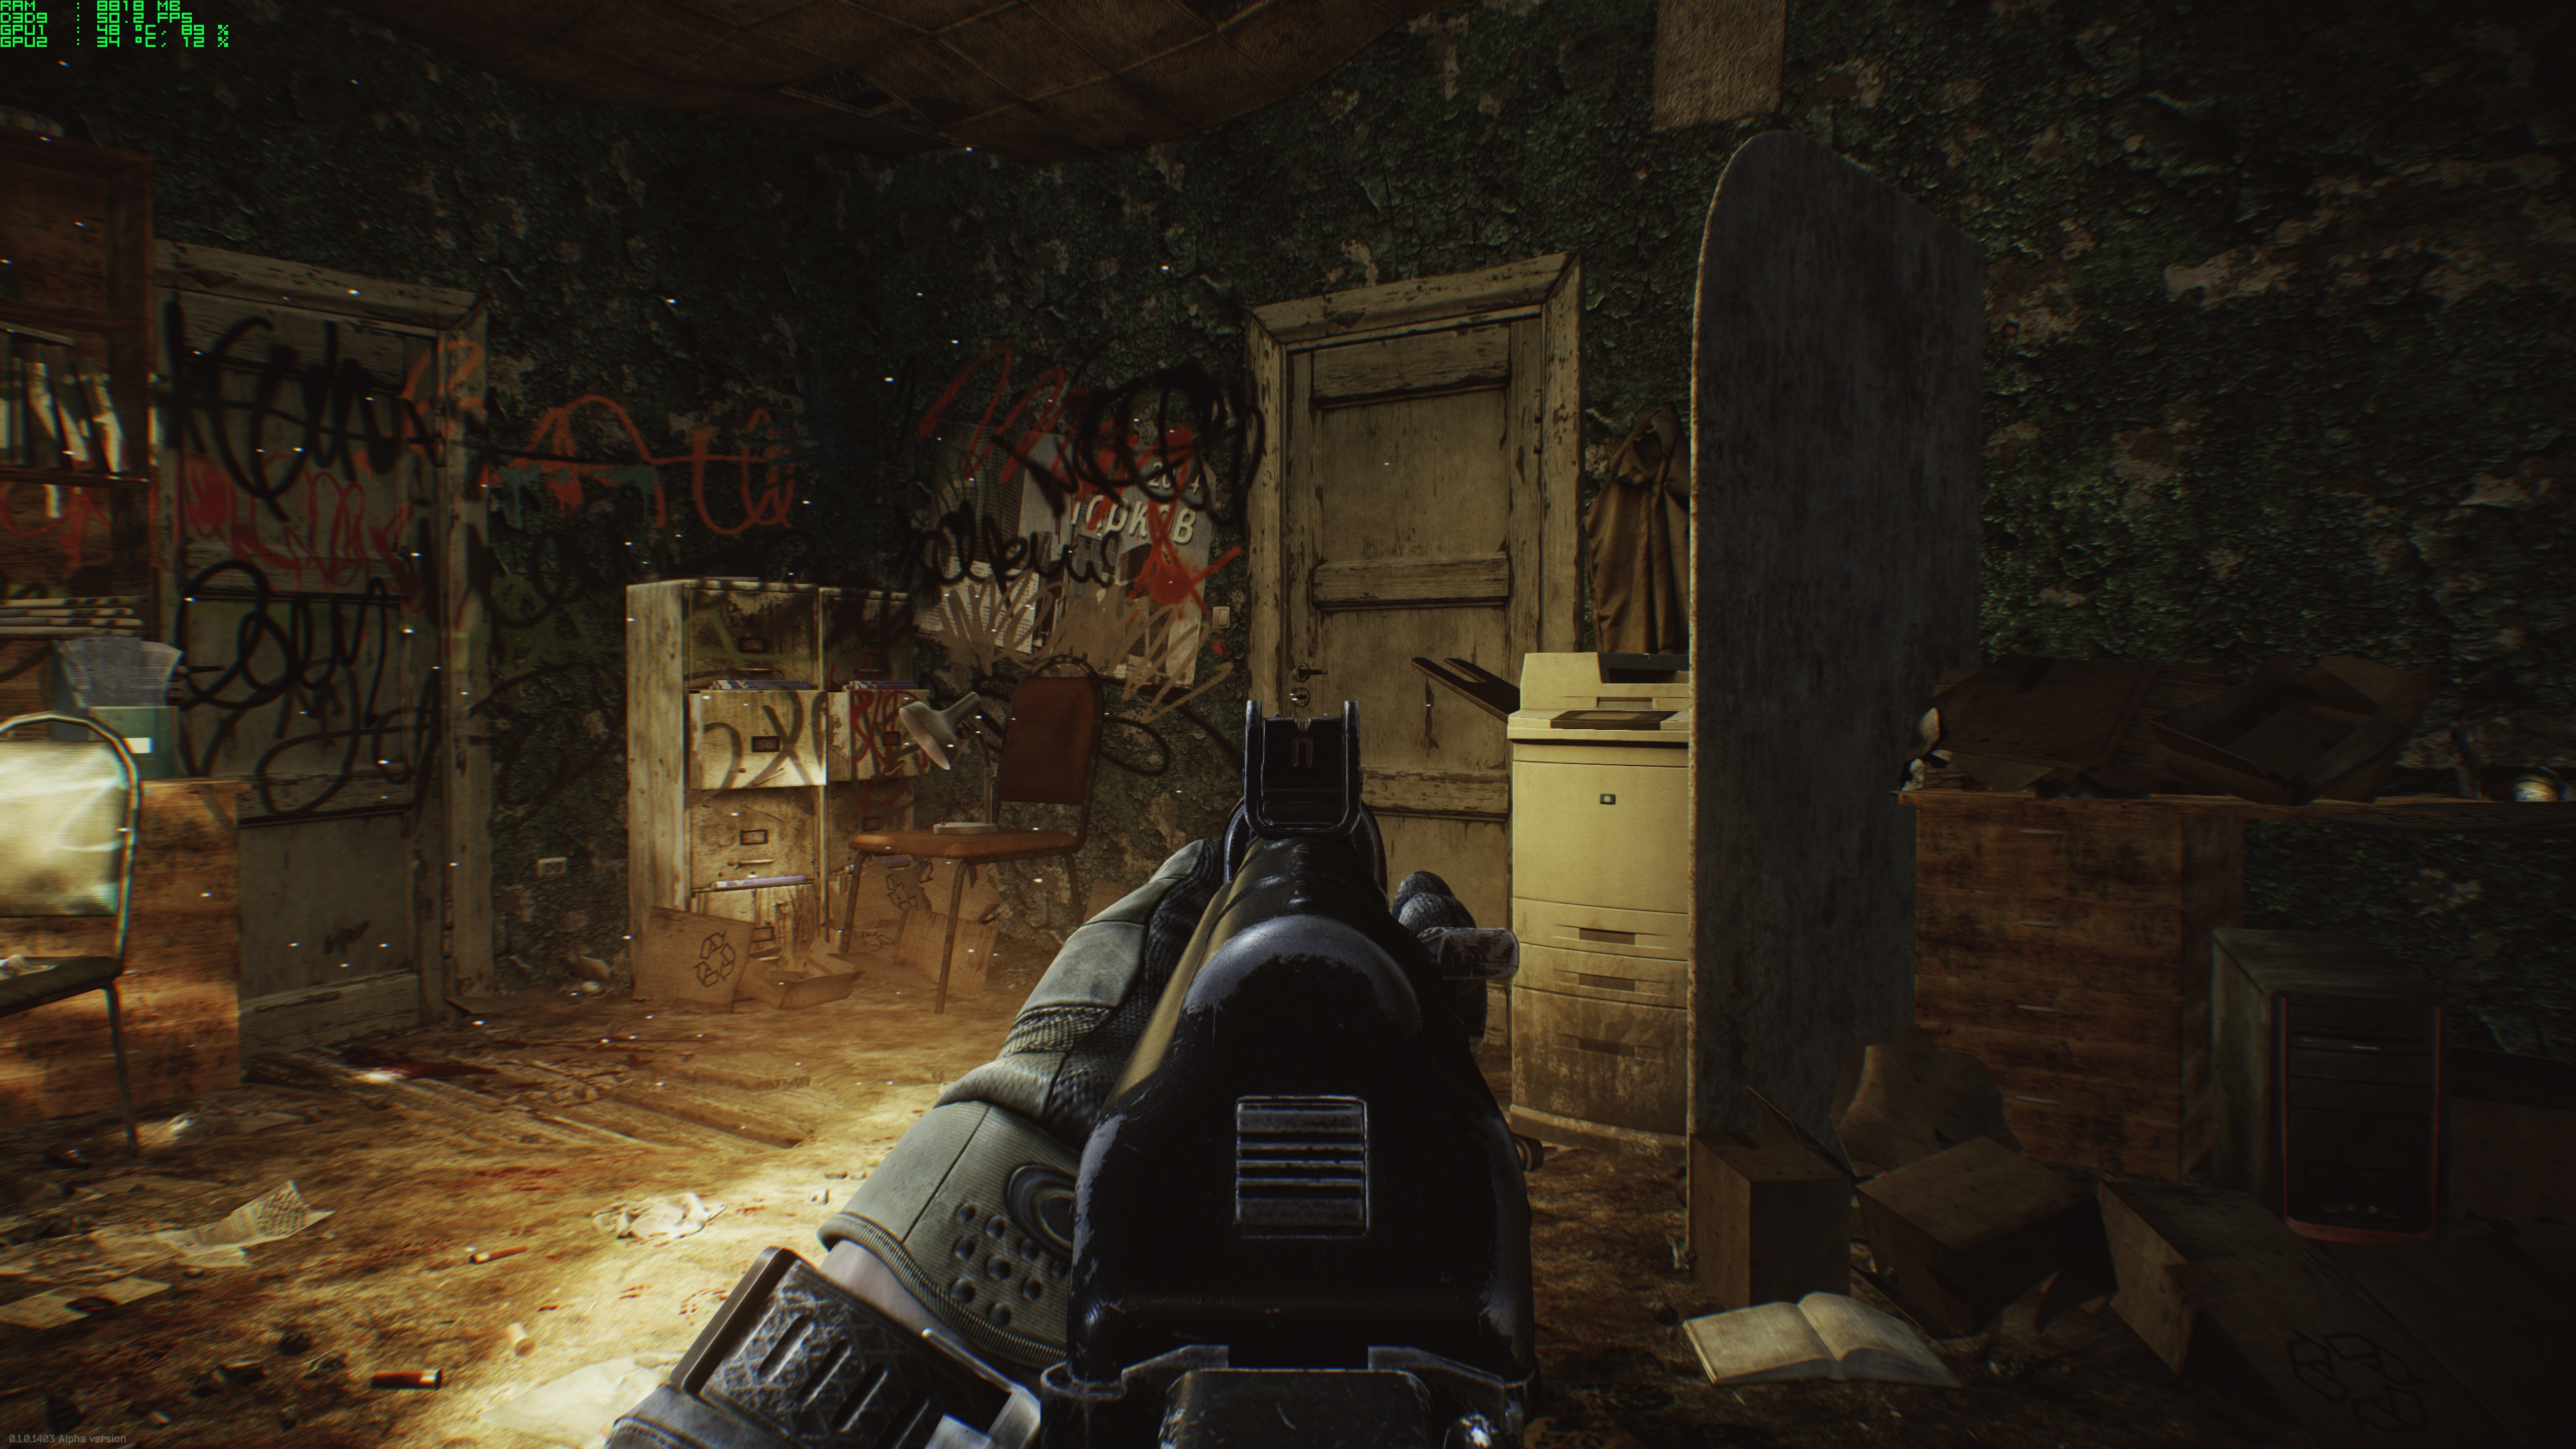 OFFICIAL] Escape From Tarkov (Discussion/Information) Thread - Page